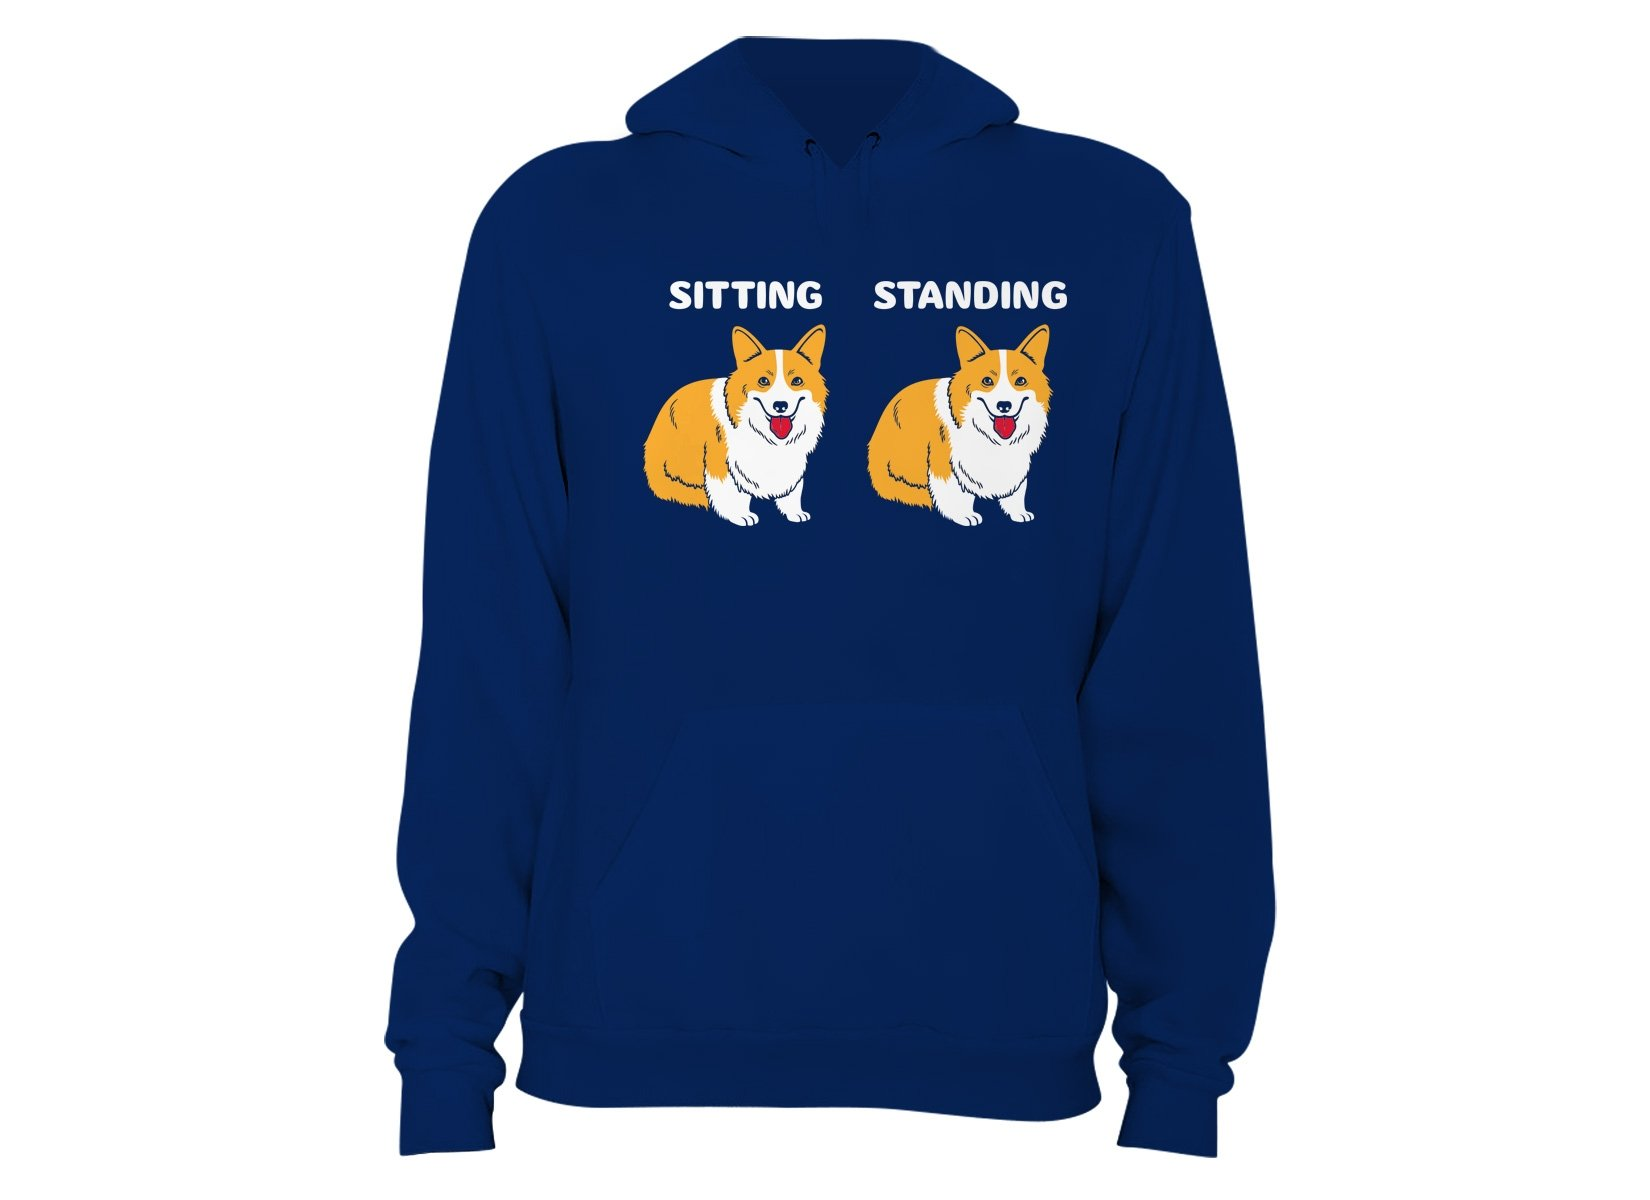 Corgi Sitting And Standing on Hoodie